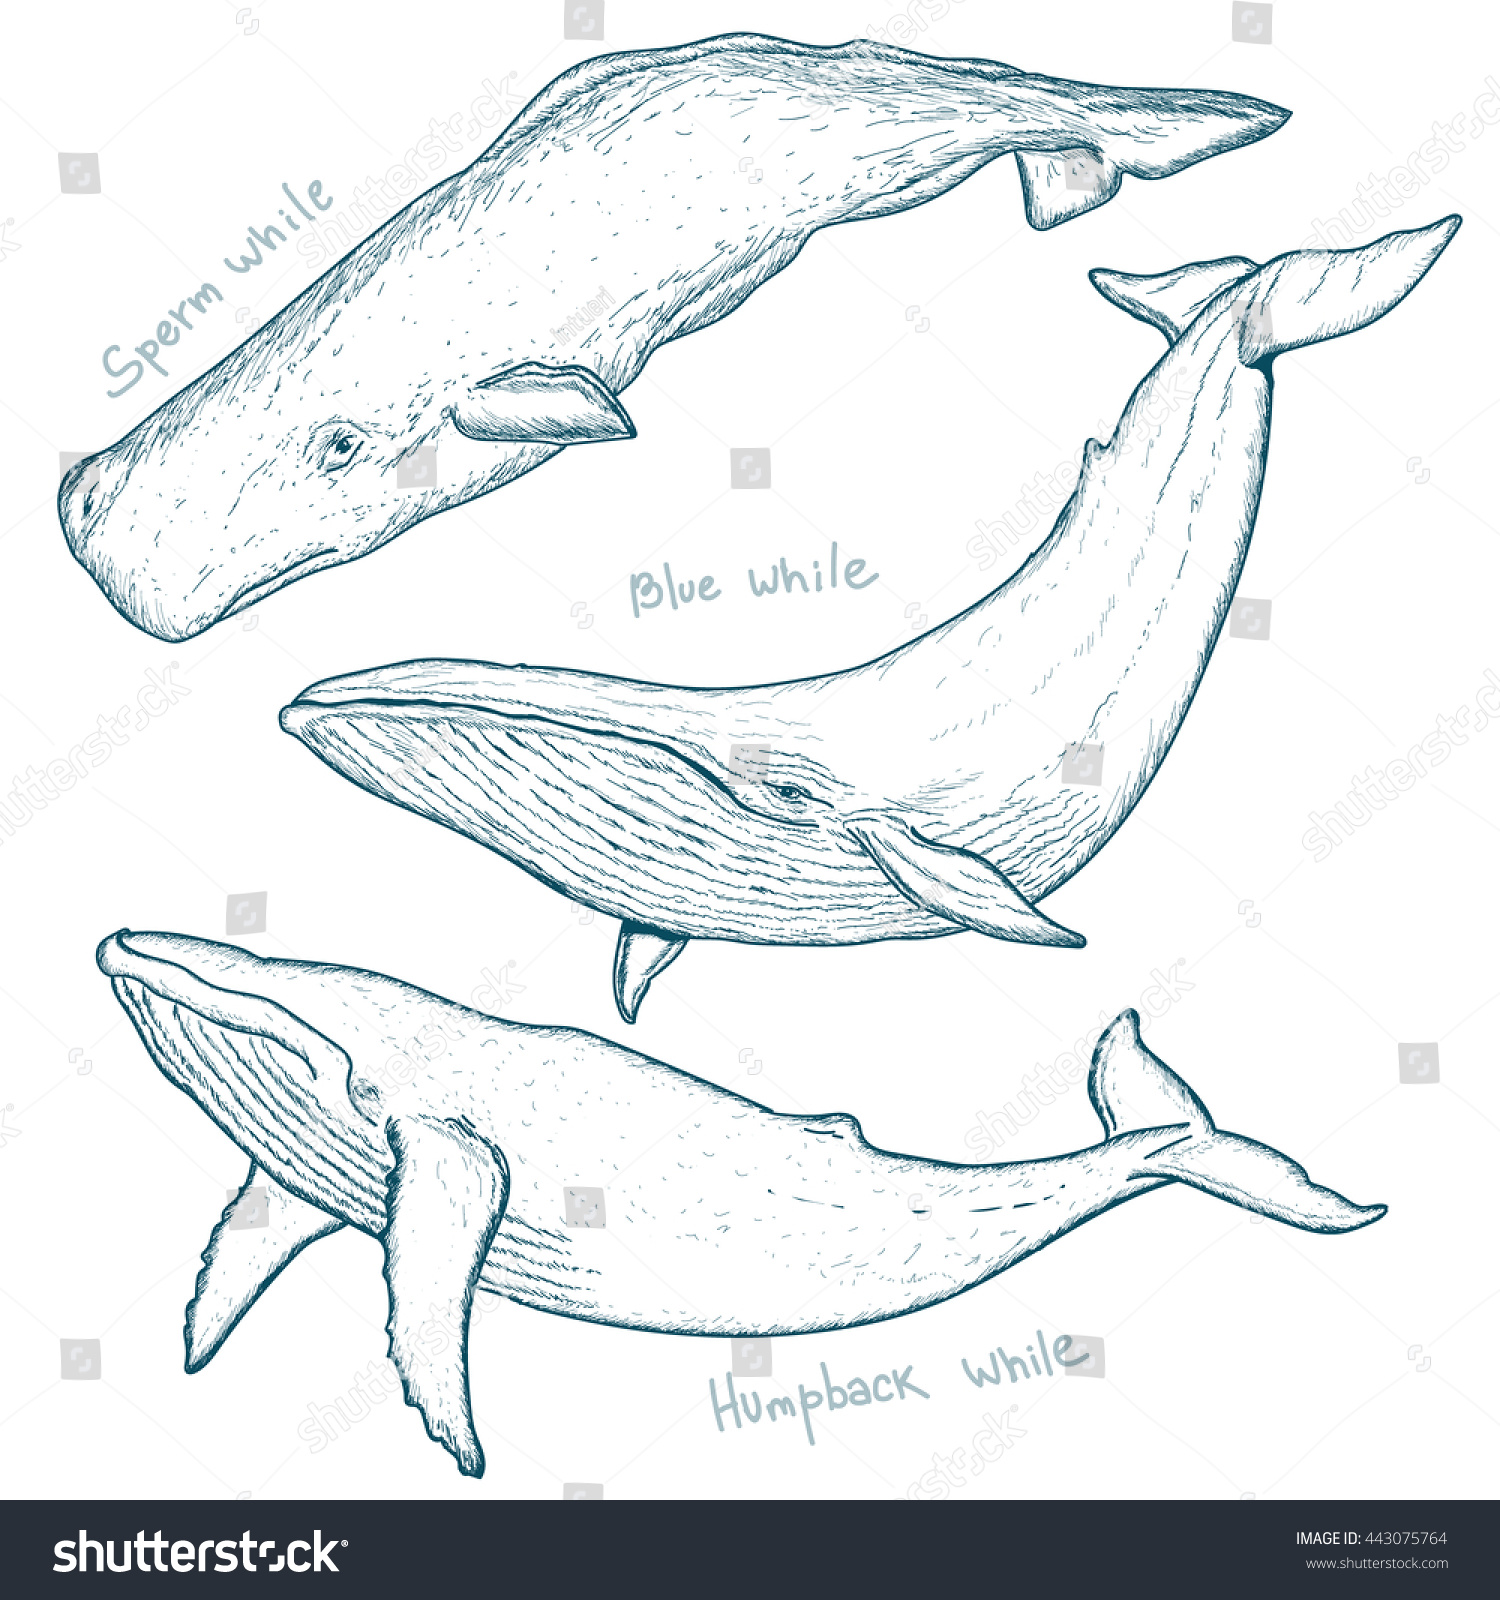 sperm-whale-sketch-drawing-gallery-erotic-amateur-movies